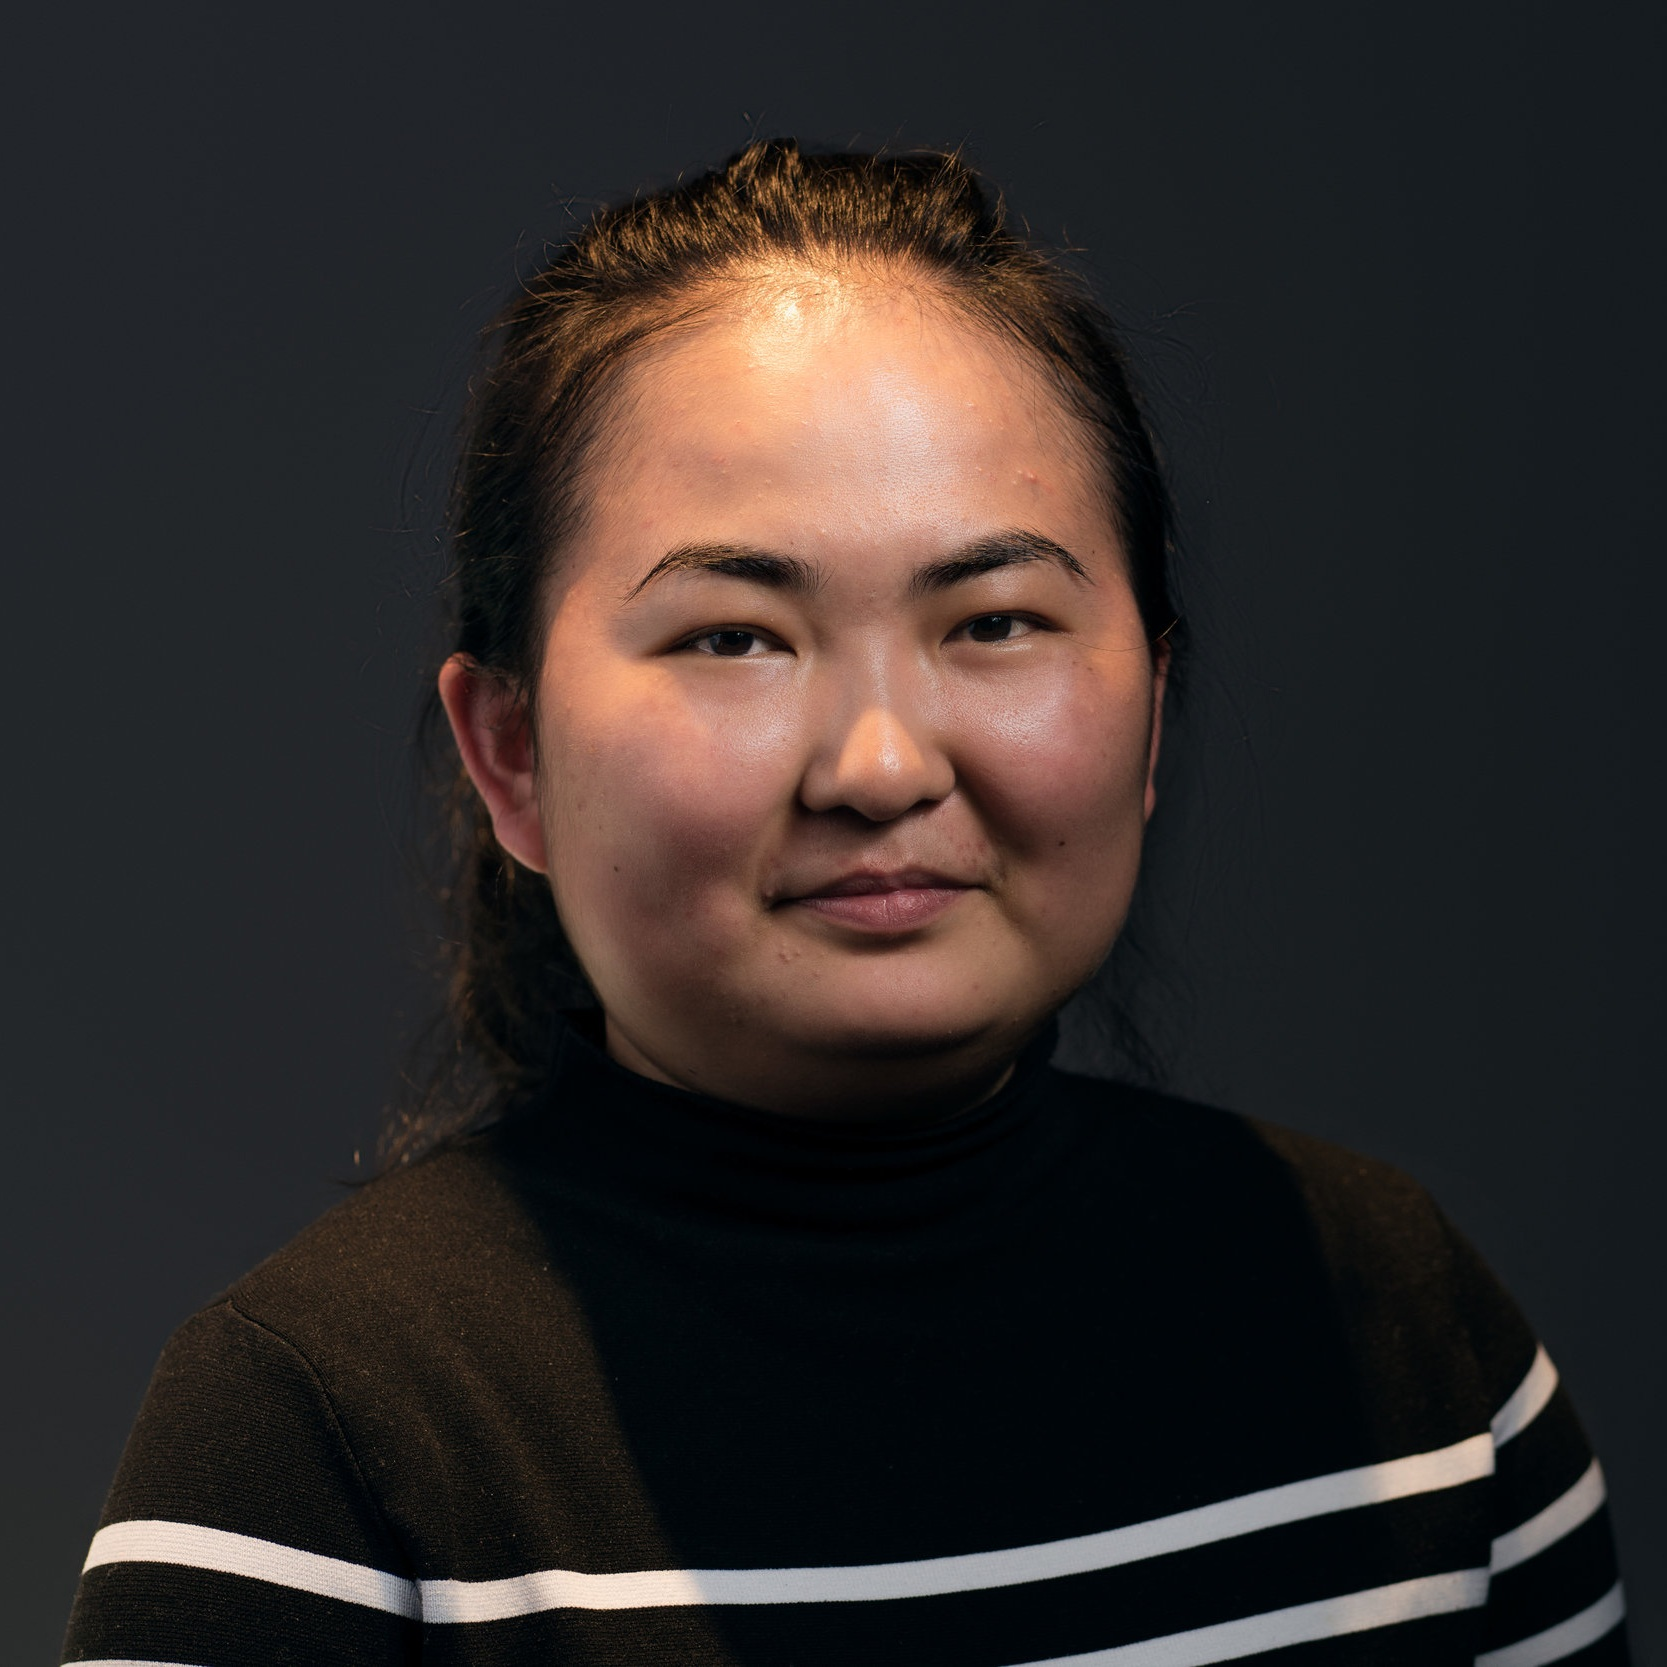 Shen Gao - Manager of Information Technology